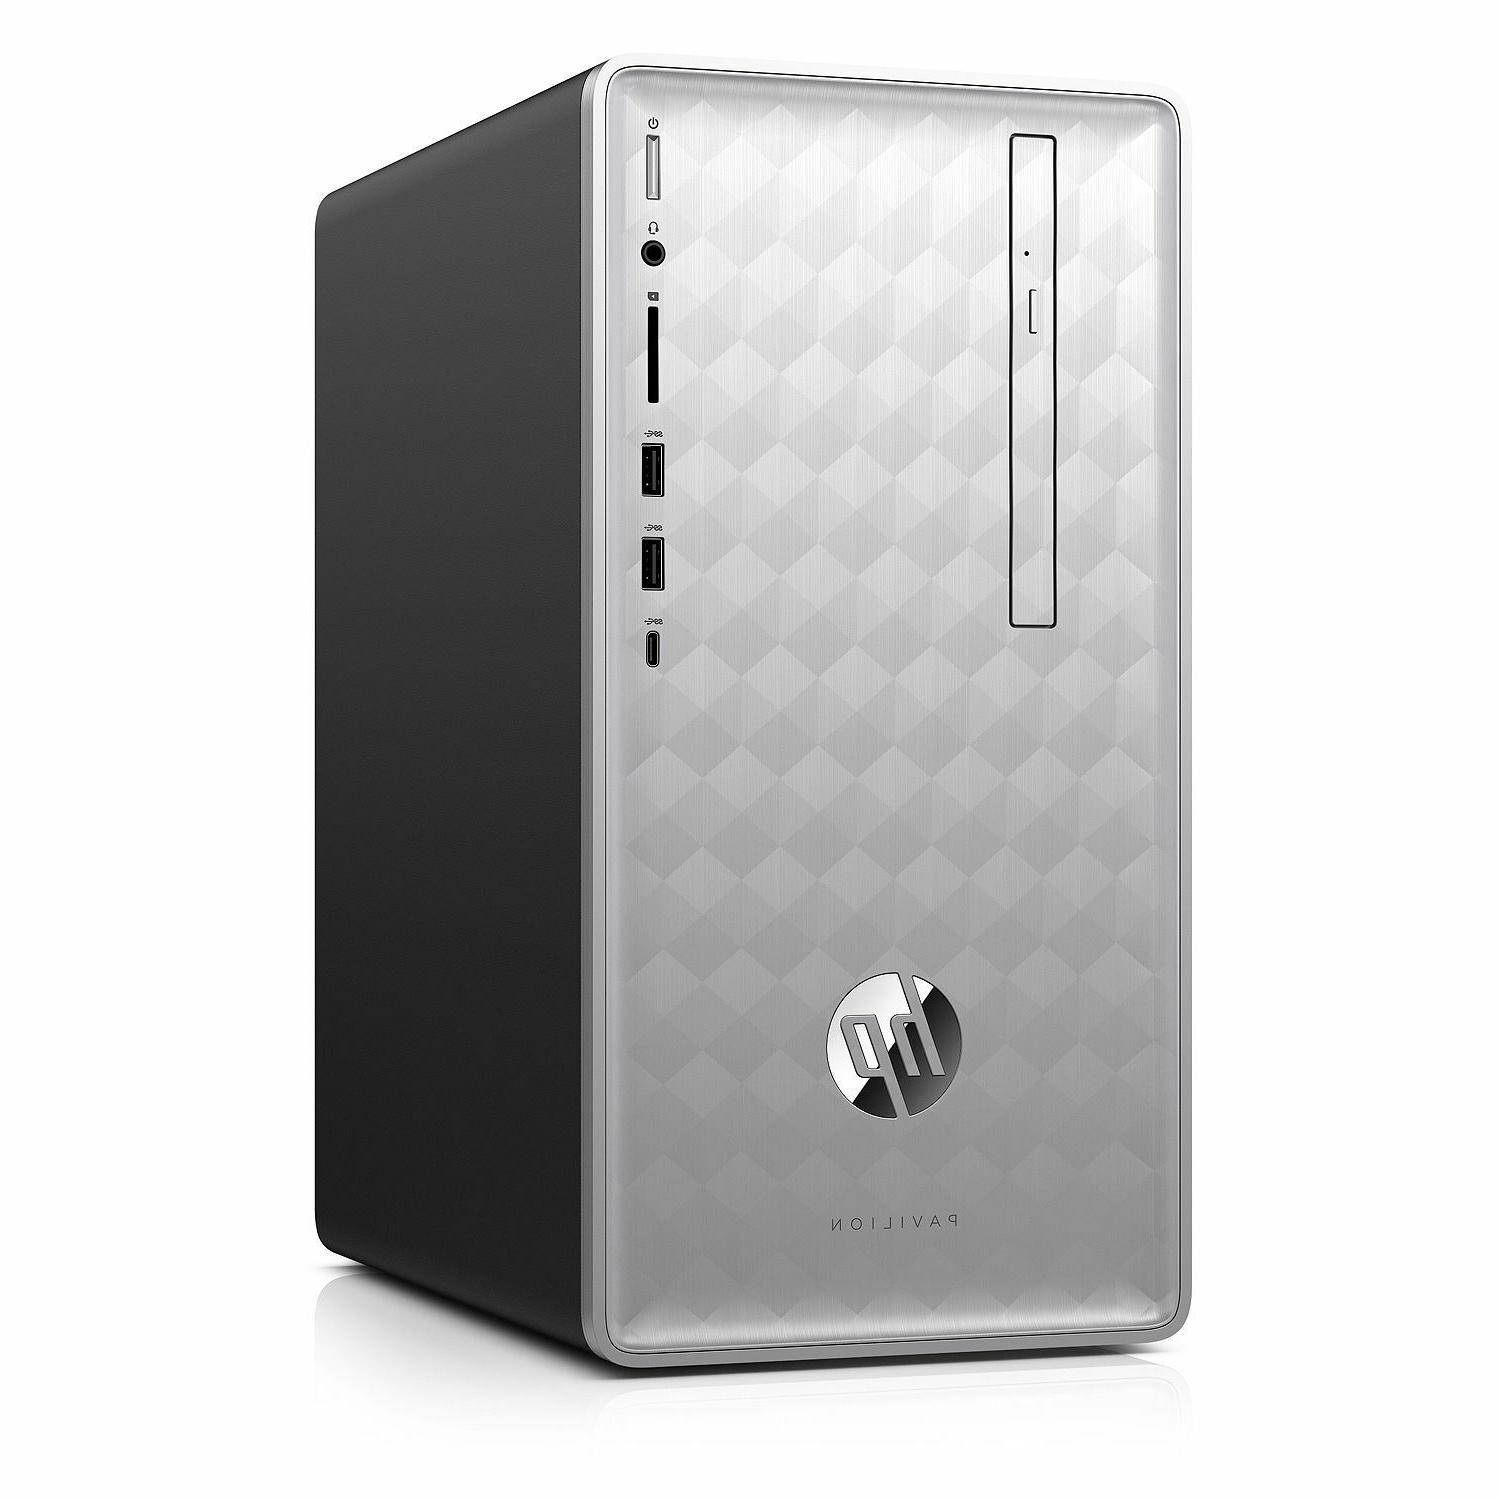 HP i7-8700 2GB Premium Tower Desktop